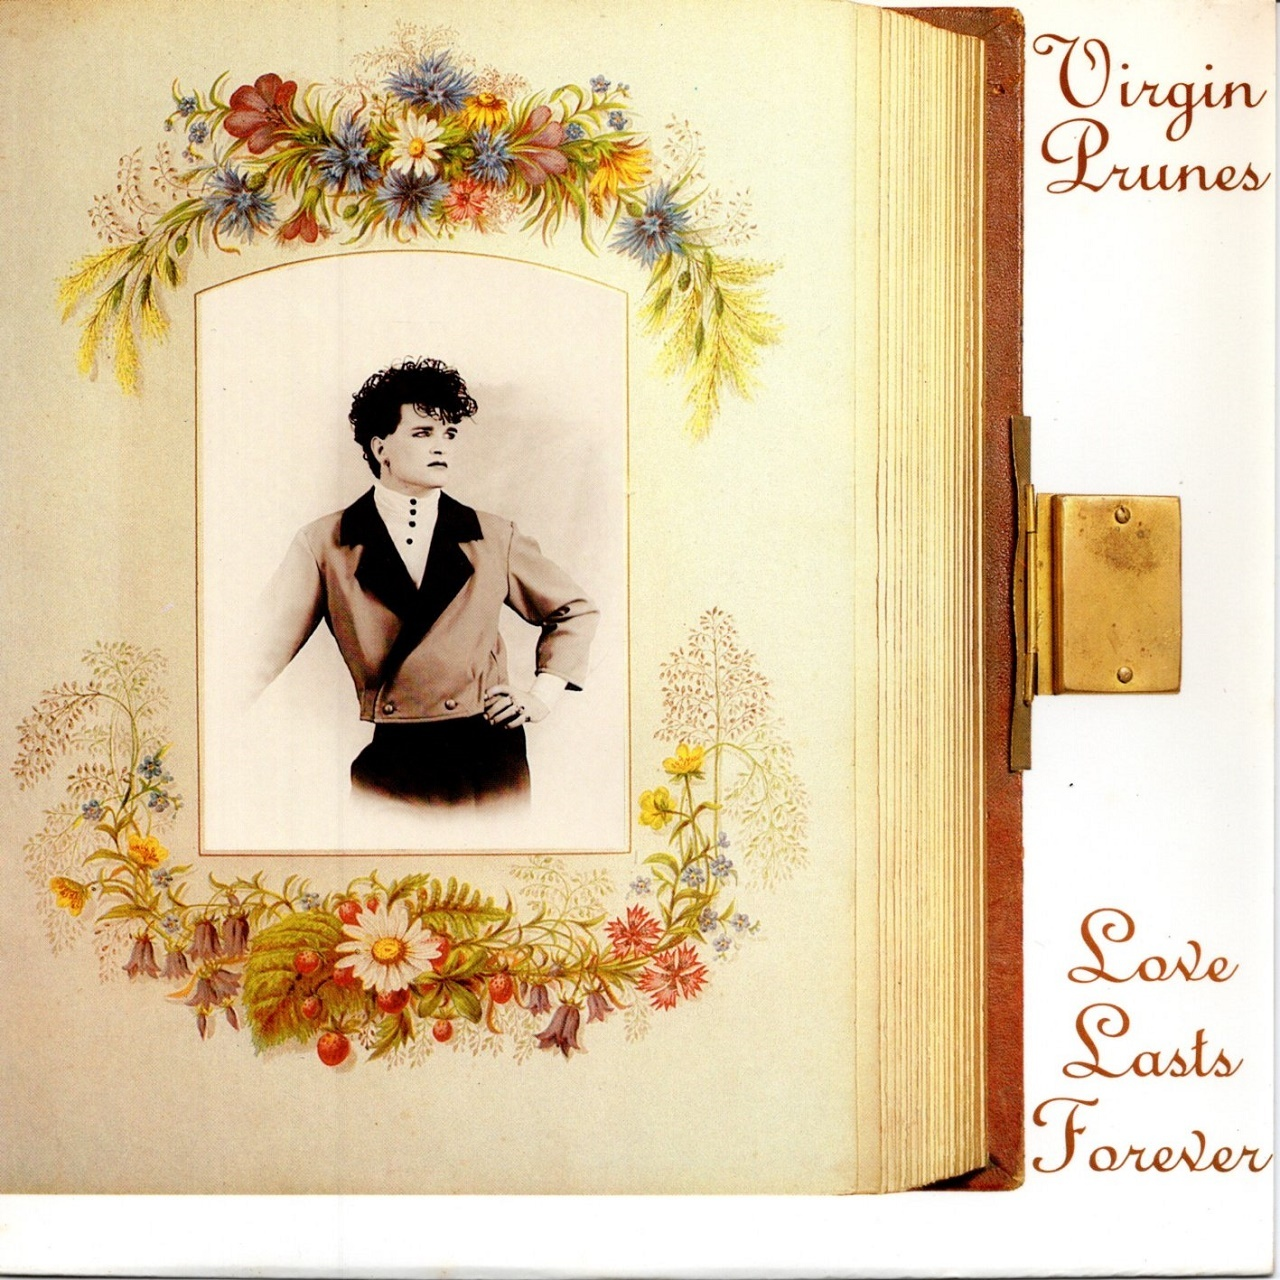 【7inch・仏盤】Virgin Prunes / Love Lasts Forever